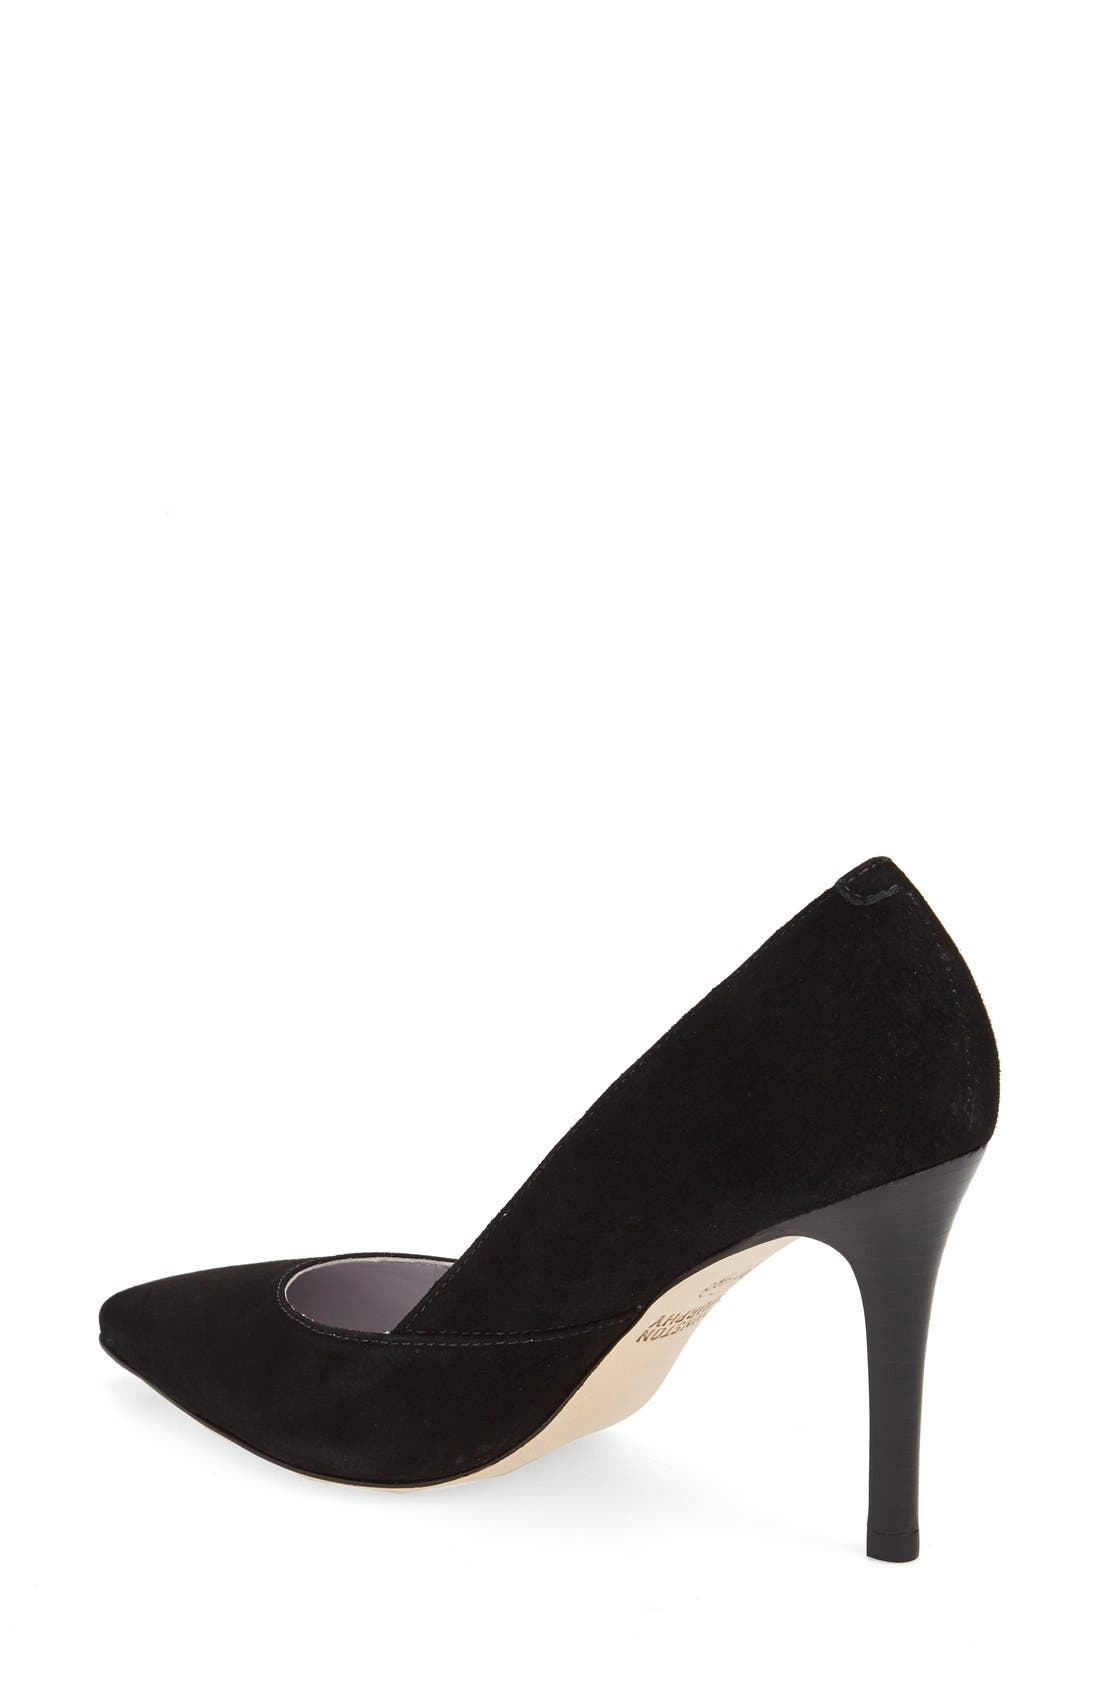 'Vanessa' Pointy Toe Leather Pump,                             Alternate thumbnail 9, color,